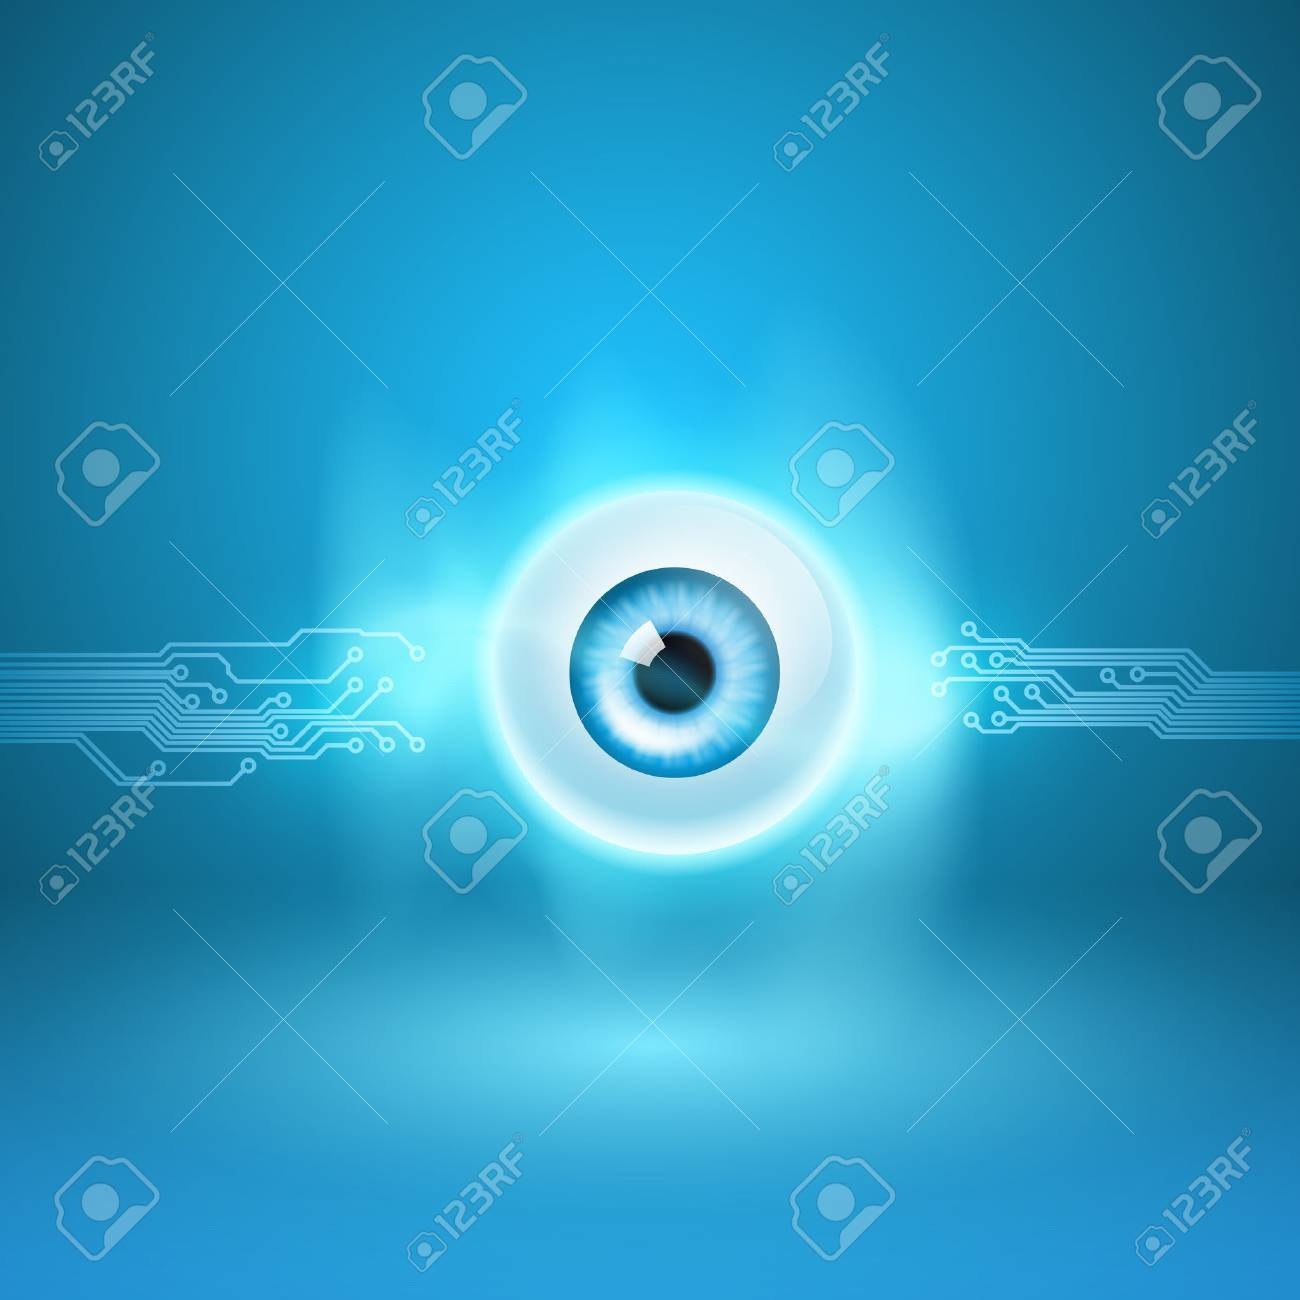 Abstract background with eye and circuit - 47170428